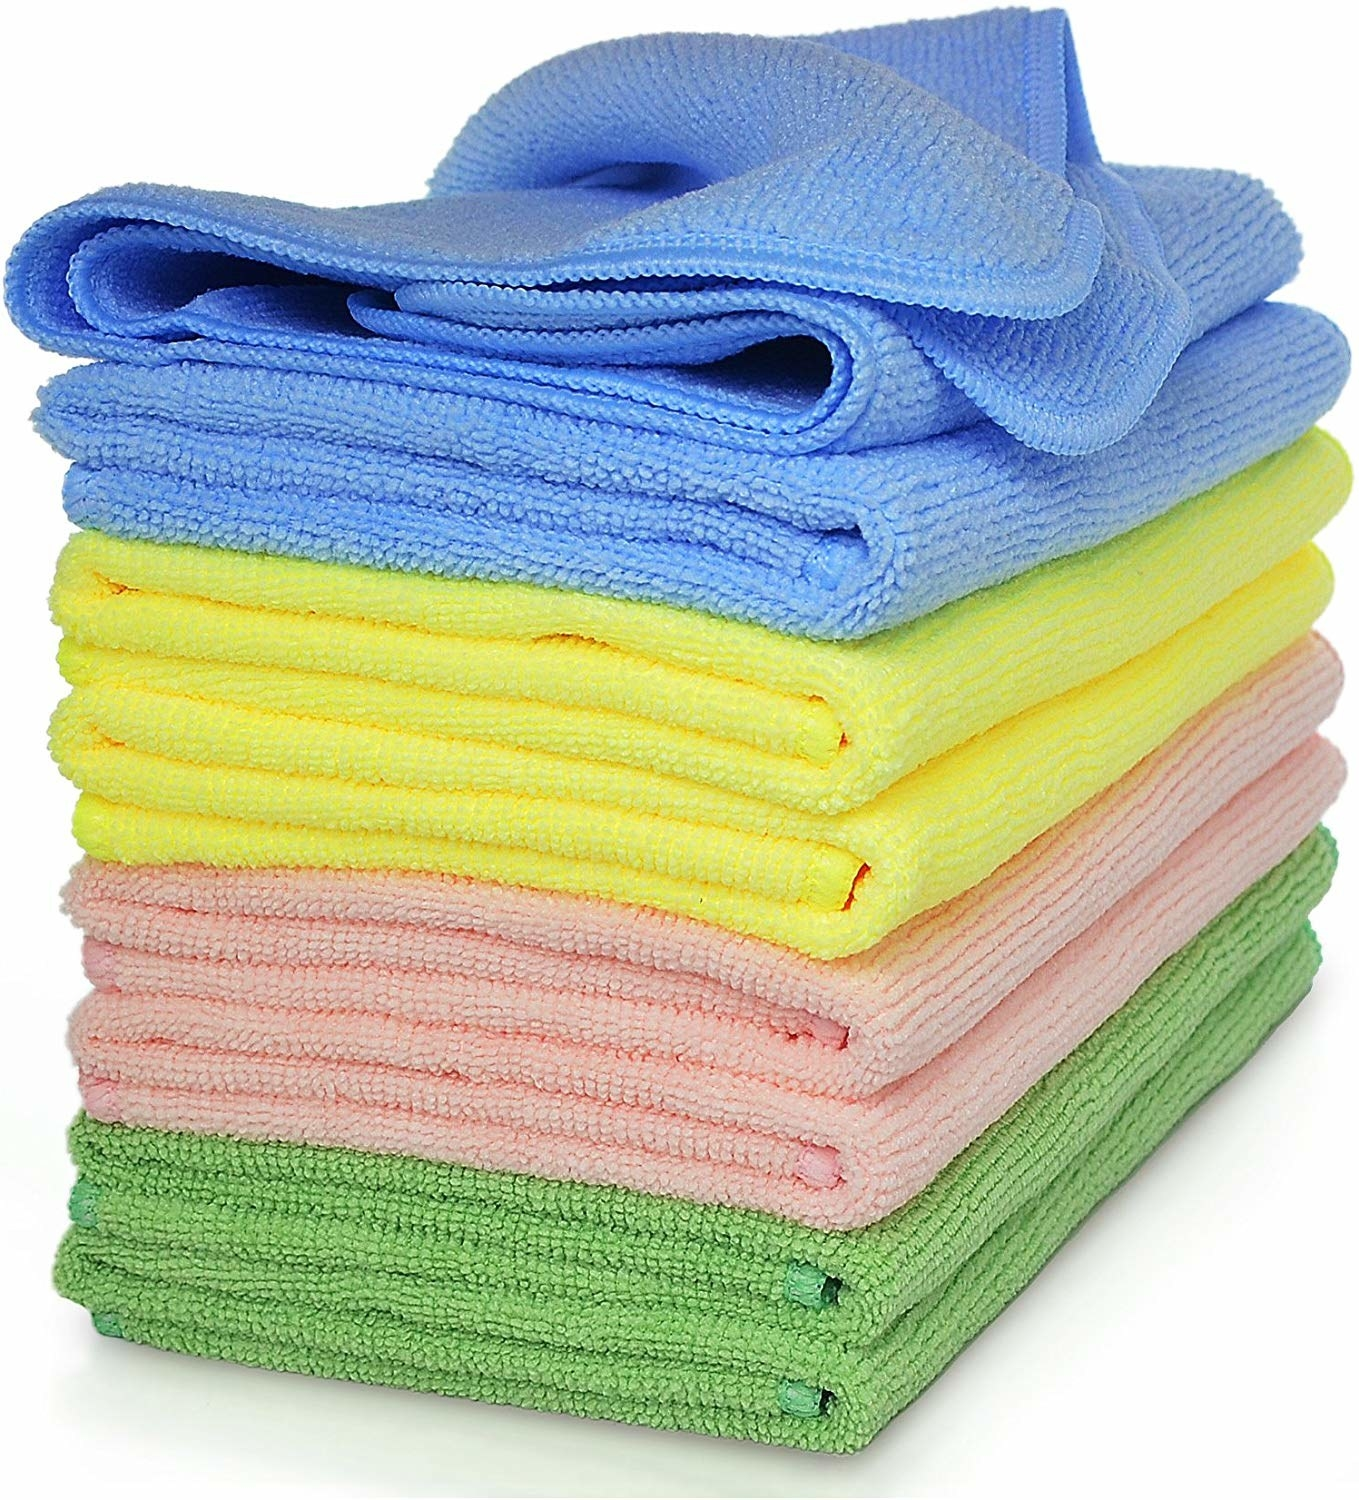 A stack of the cloths